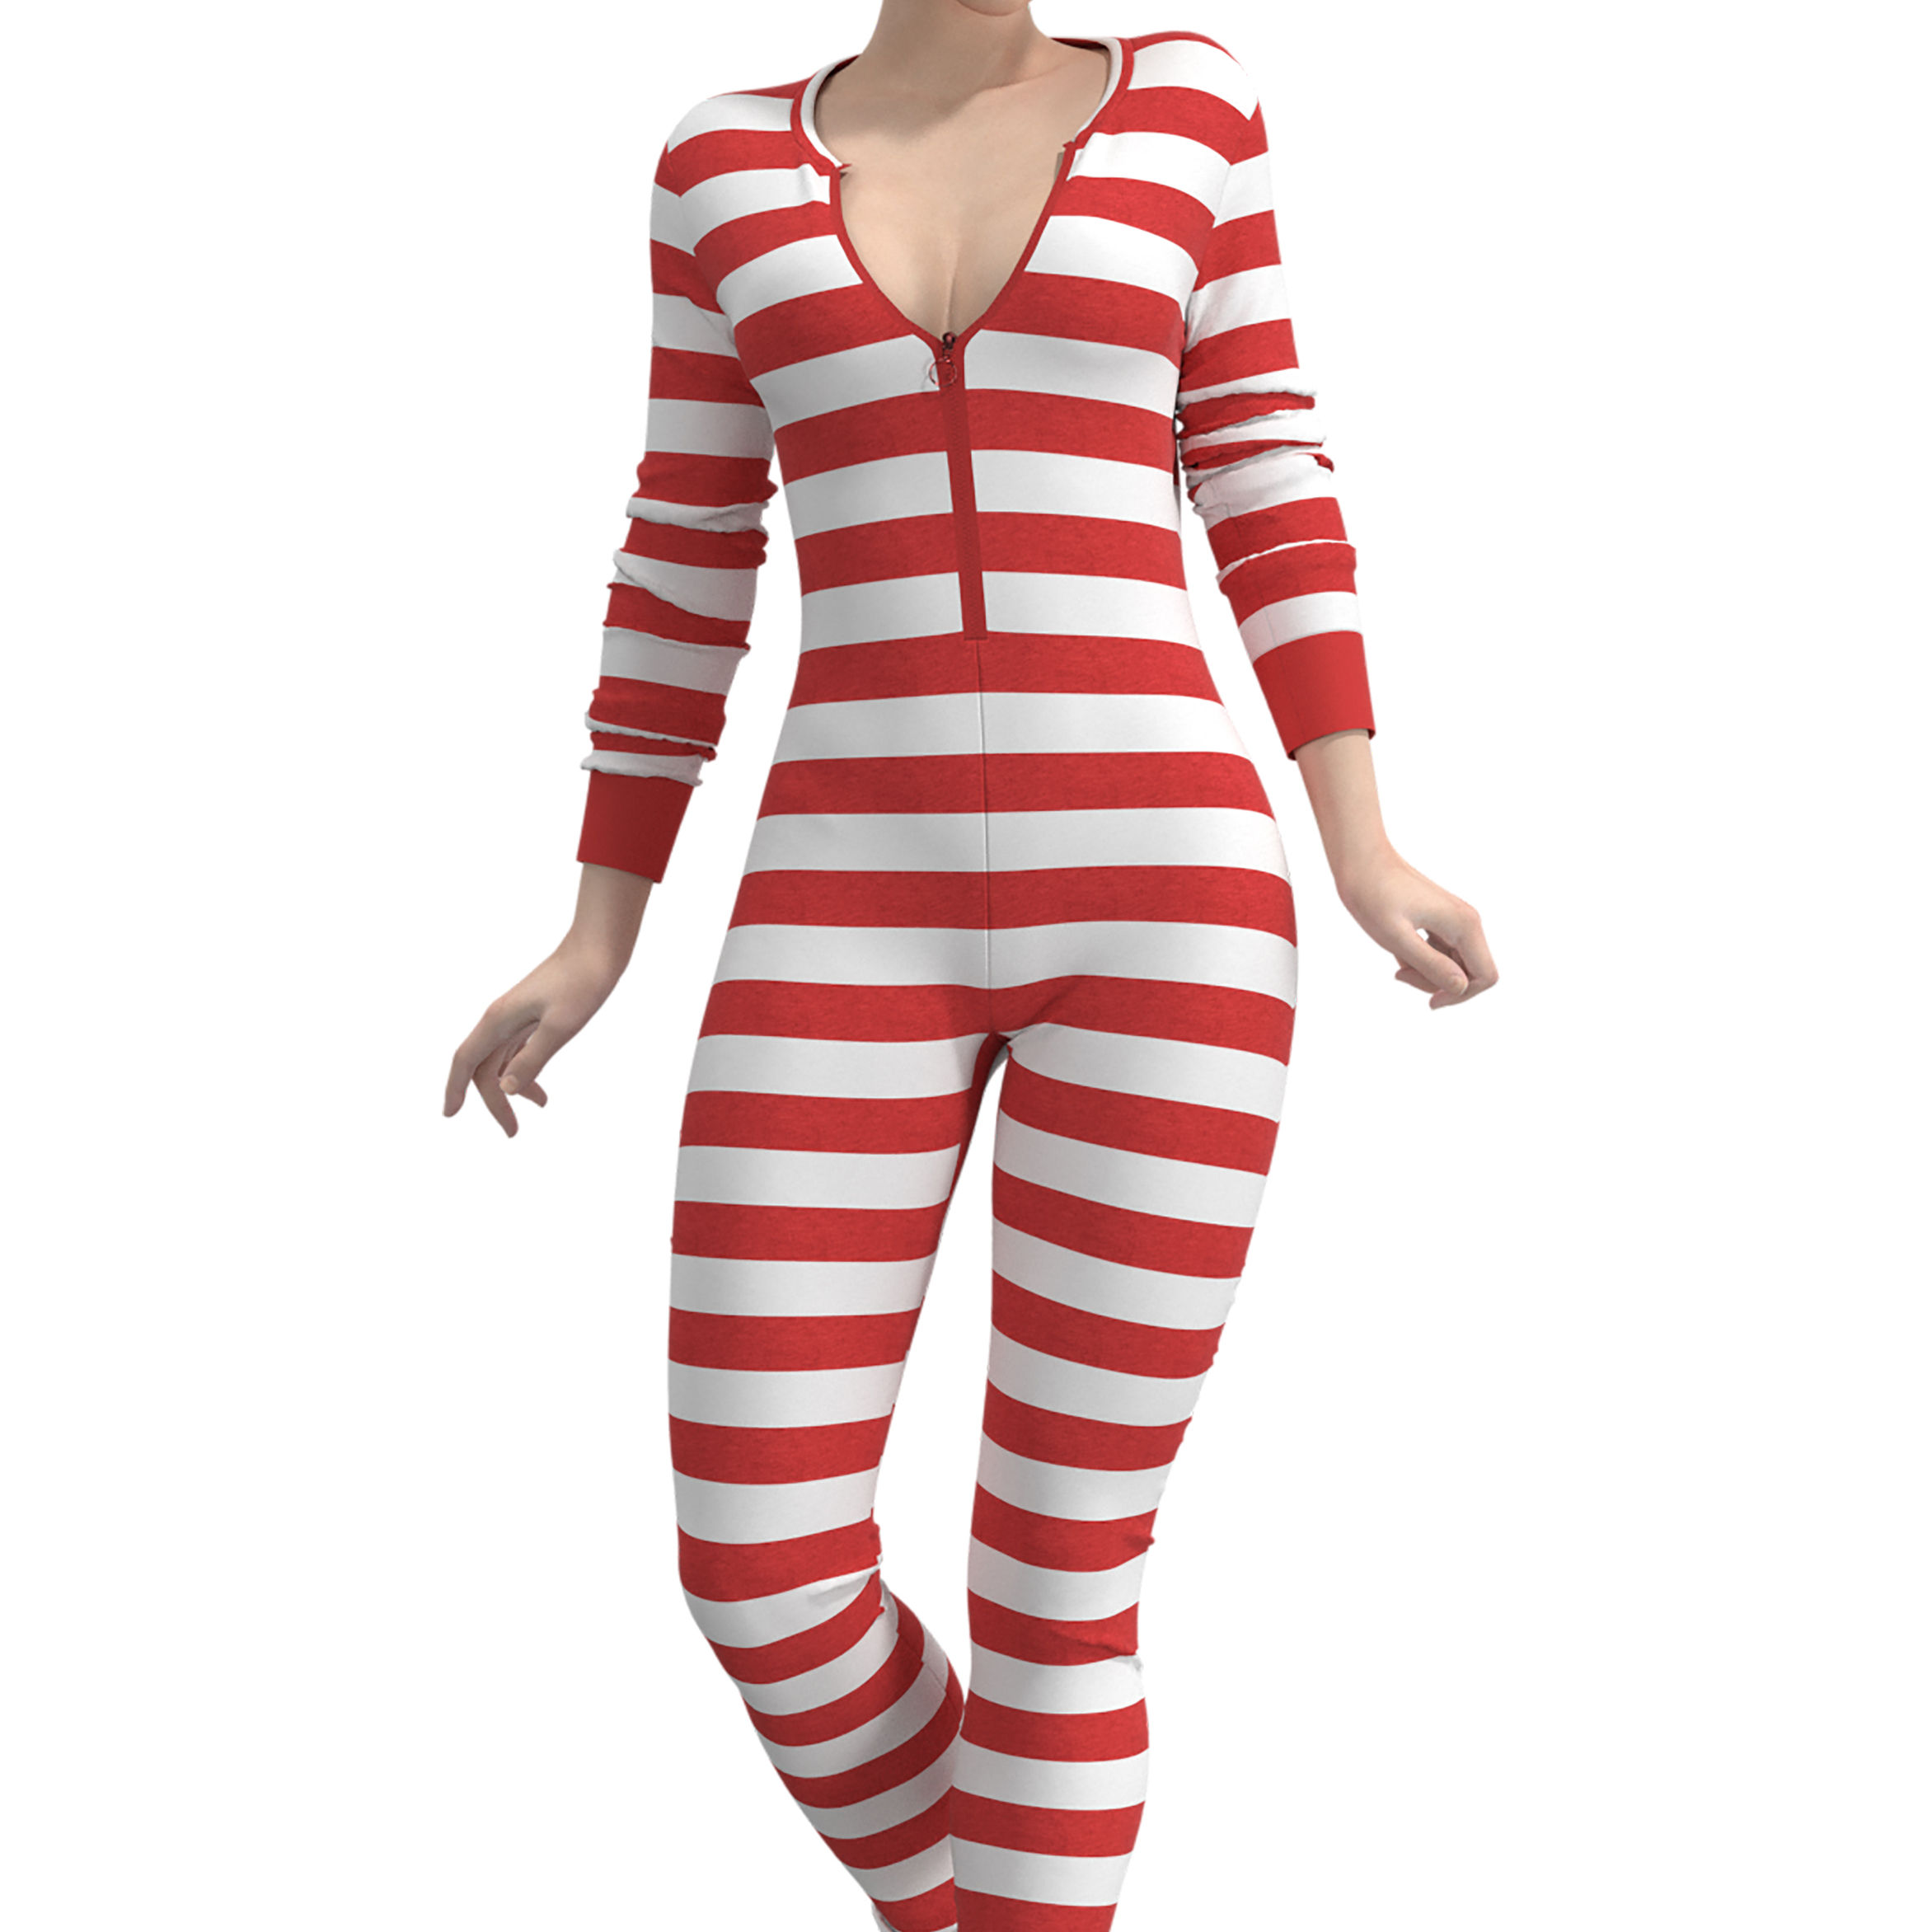 OEM Printed Private Label Women Striped Onesie Pajamas Sleep Jumpsuit